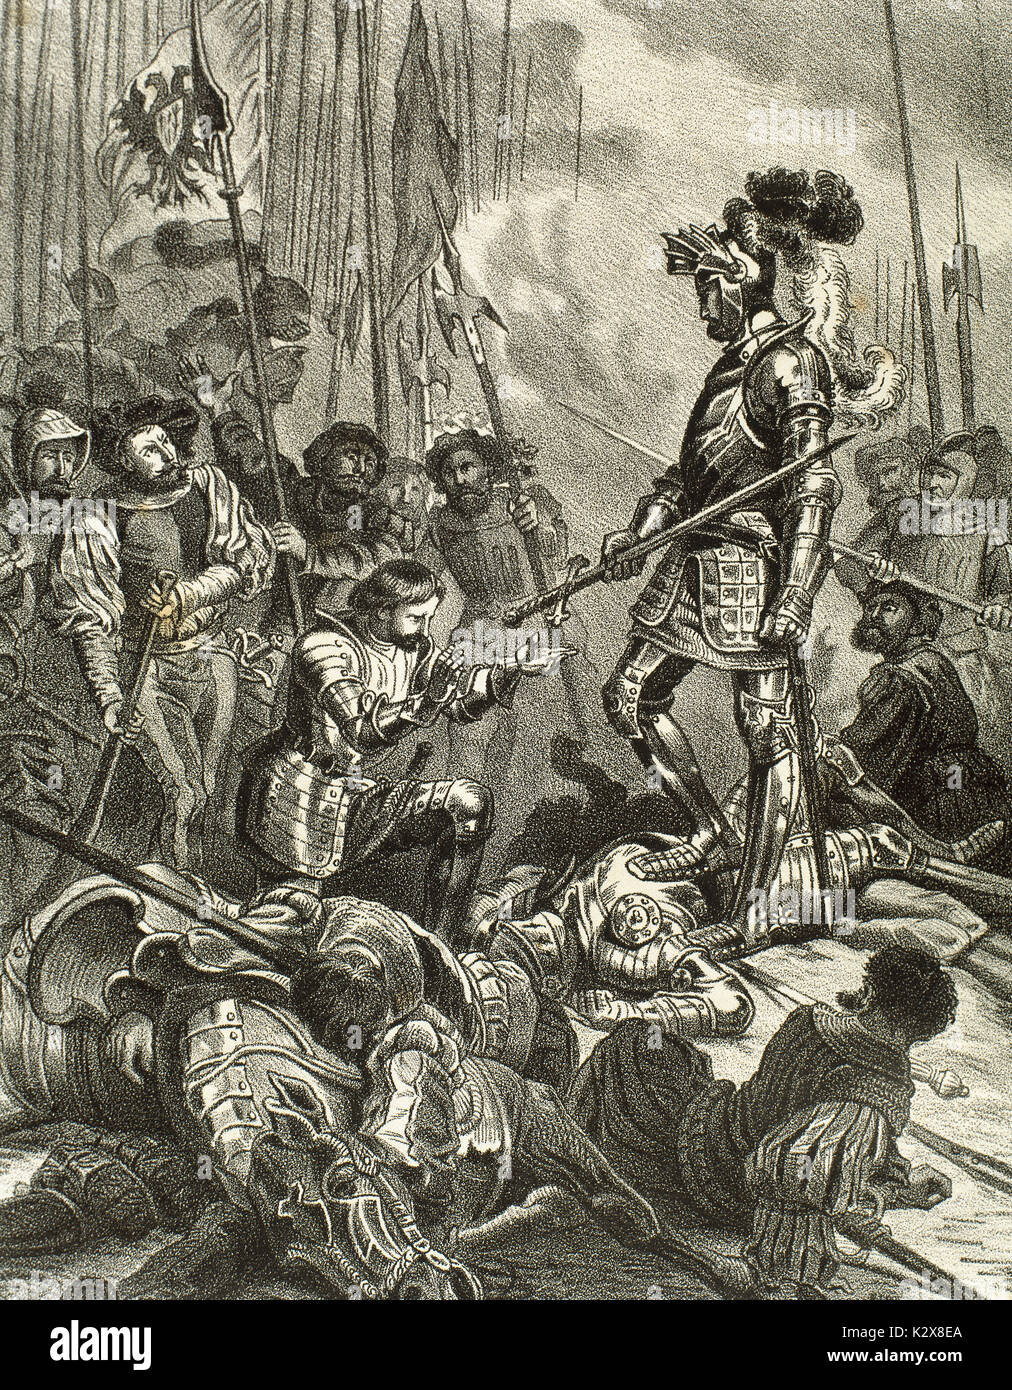 The battle of Pavia. Held on February 24, 1525 between the French army under King Francis I (1494-1547) and German-Spanish troops of Emperor Charles V (1500-1558), who won the battle. Francis I of France made prisoner after his defeat. Engraving. - Stock Image